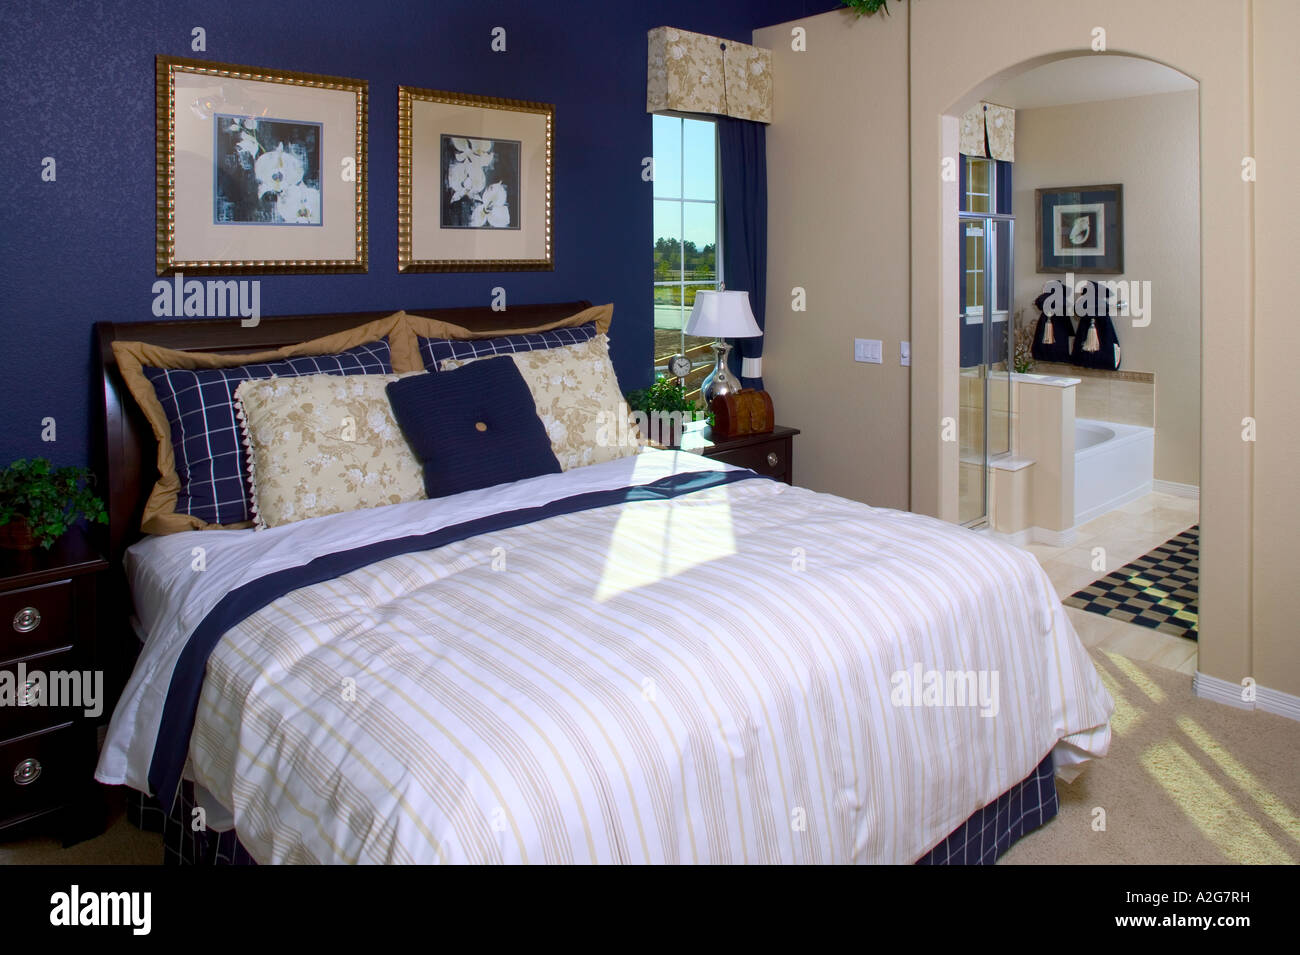 Middle Class Home Interior Bedroom High Resolution Stock Photography And Images Alamy